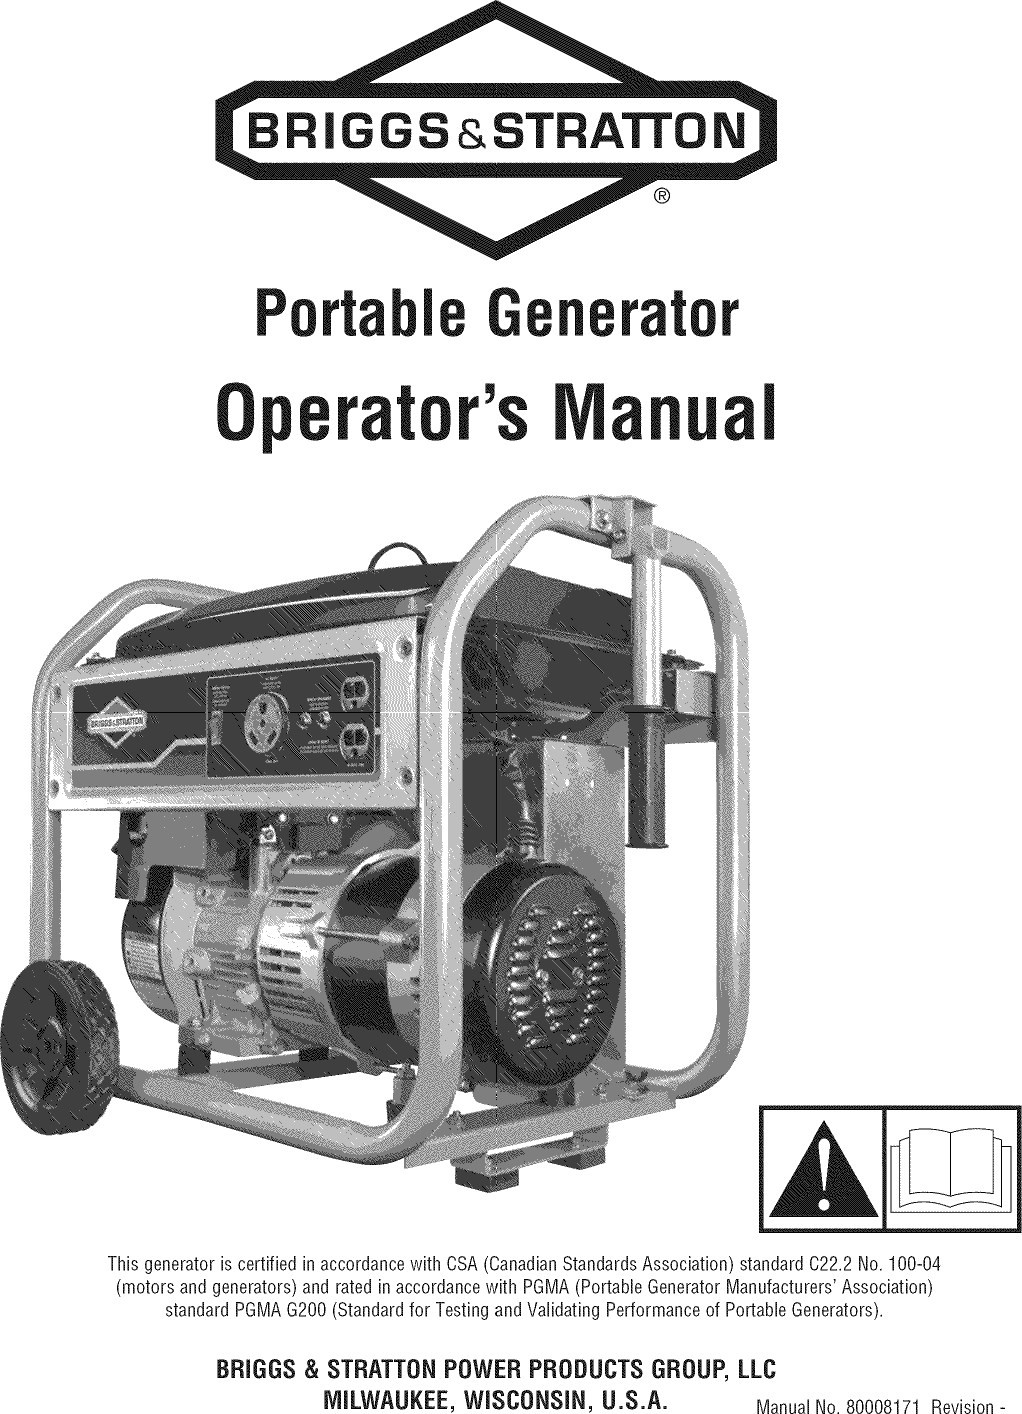 Briggs & Stratton 030547 00 User Manual GENERATOR Manuals